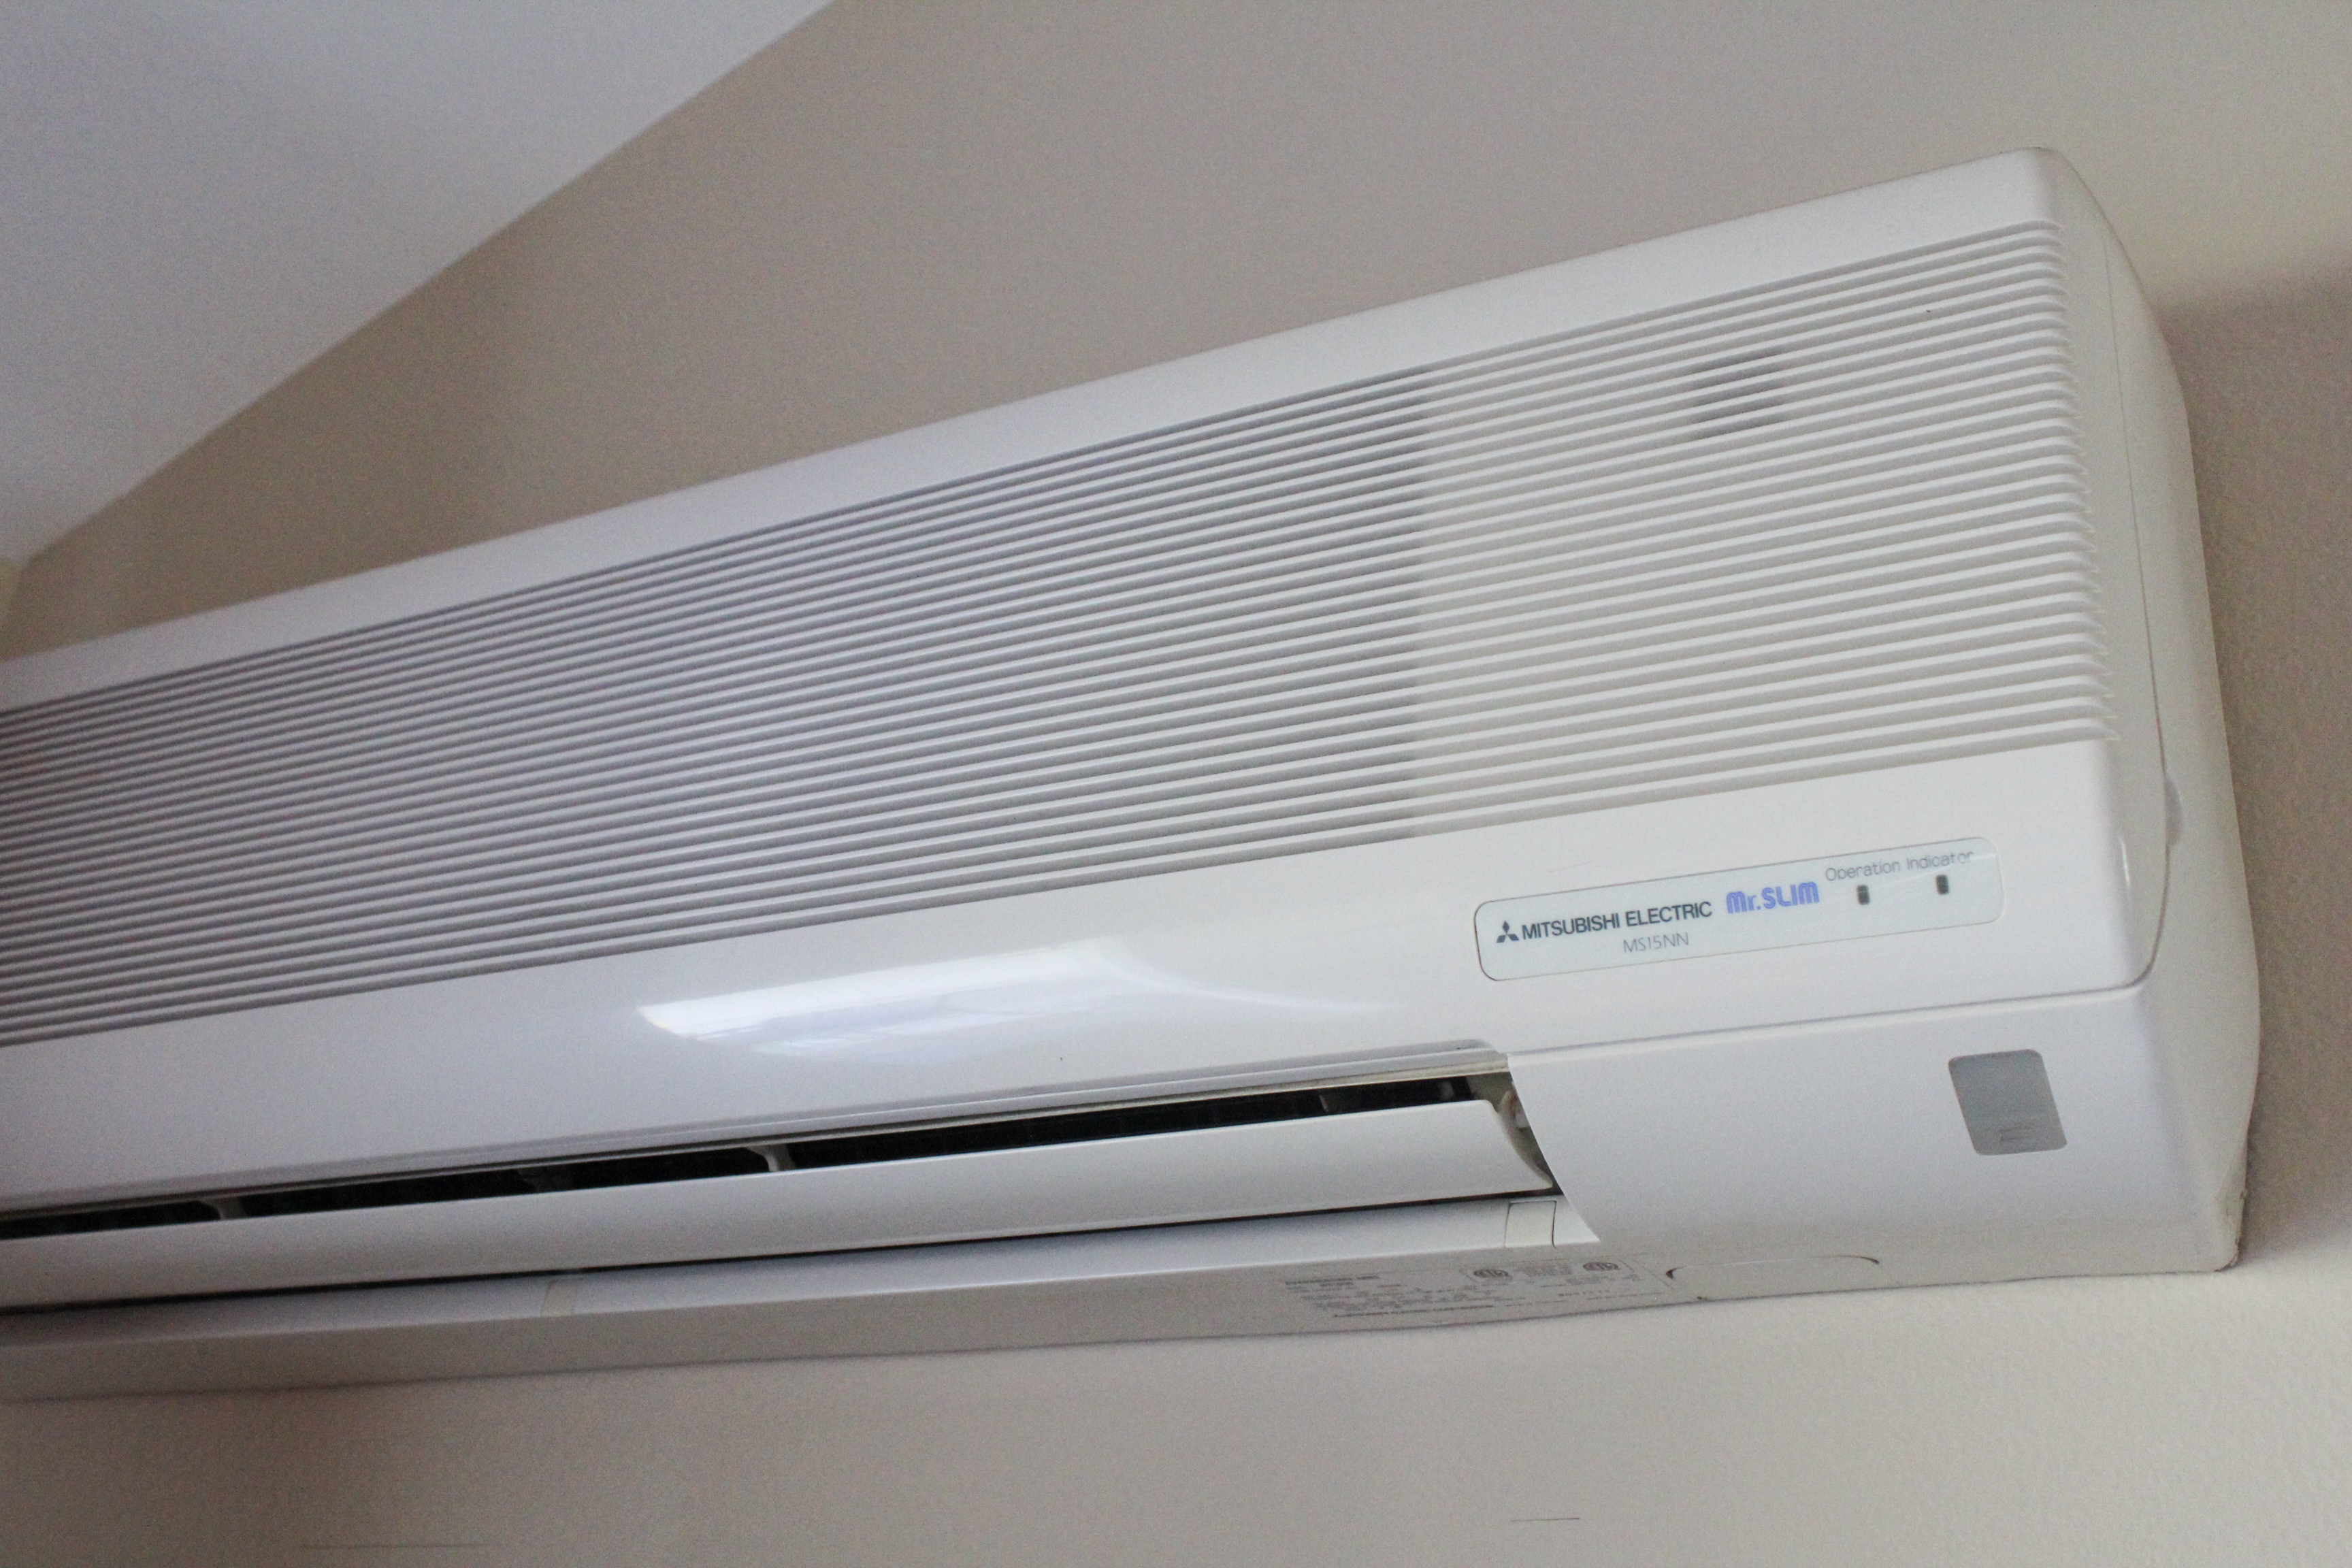 Electric Heat And Air Wall Units : Ductless heating and cooling systems to lower your costs